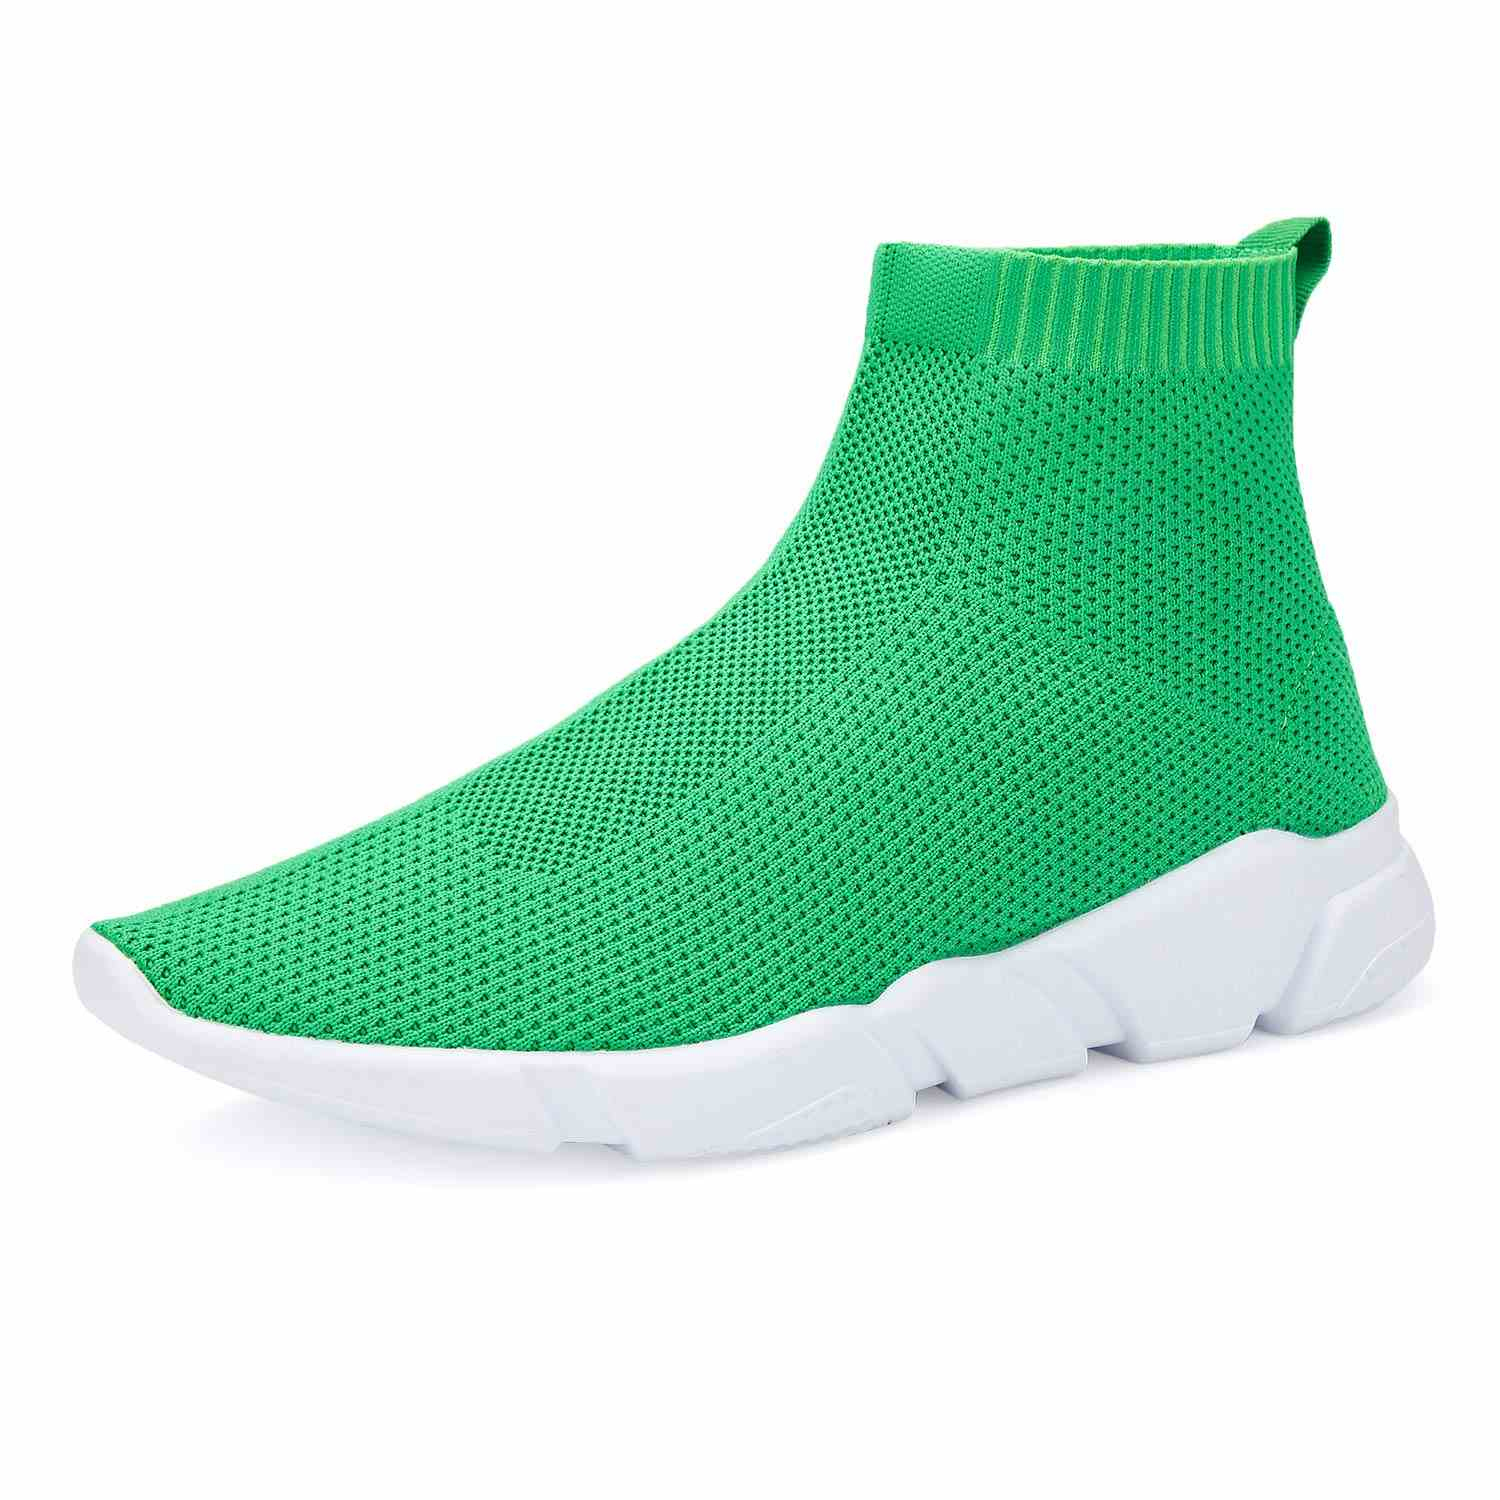 Men's Running Lightweight Breathable Casual Sports Shoes Fashion Sneakers Walking Shoes